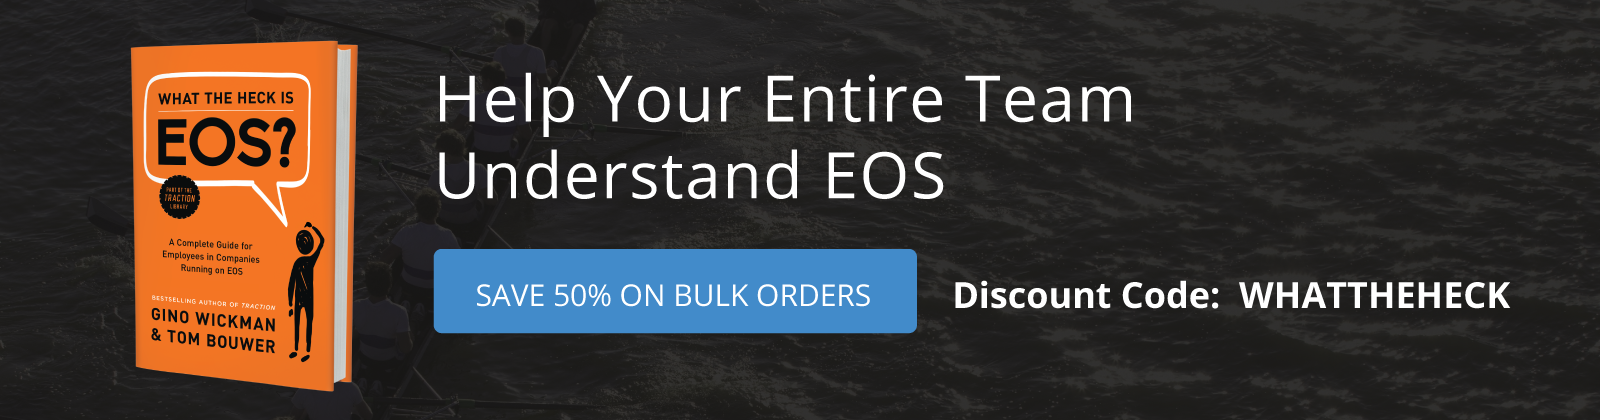 Bulk order What the Heck is EOS?